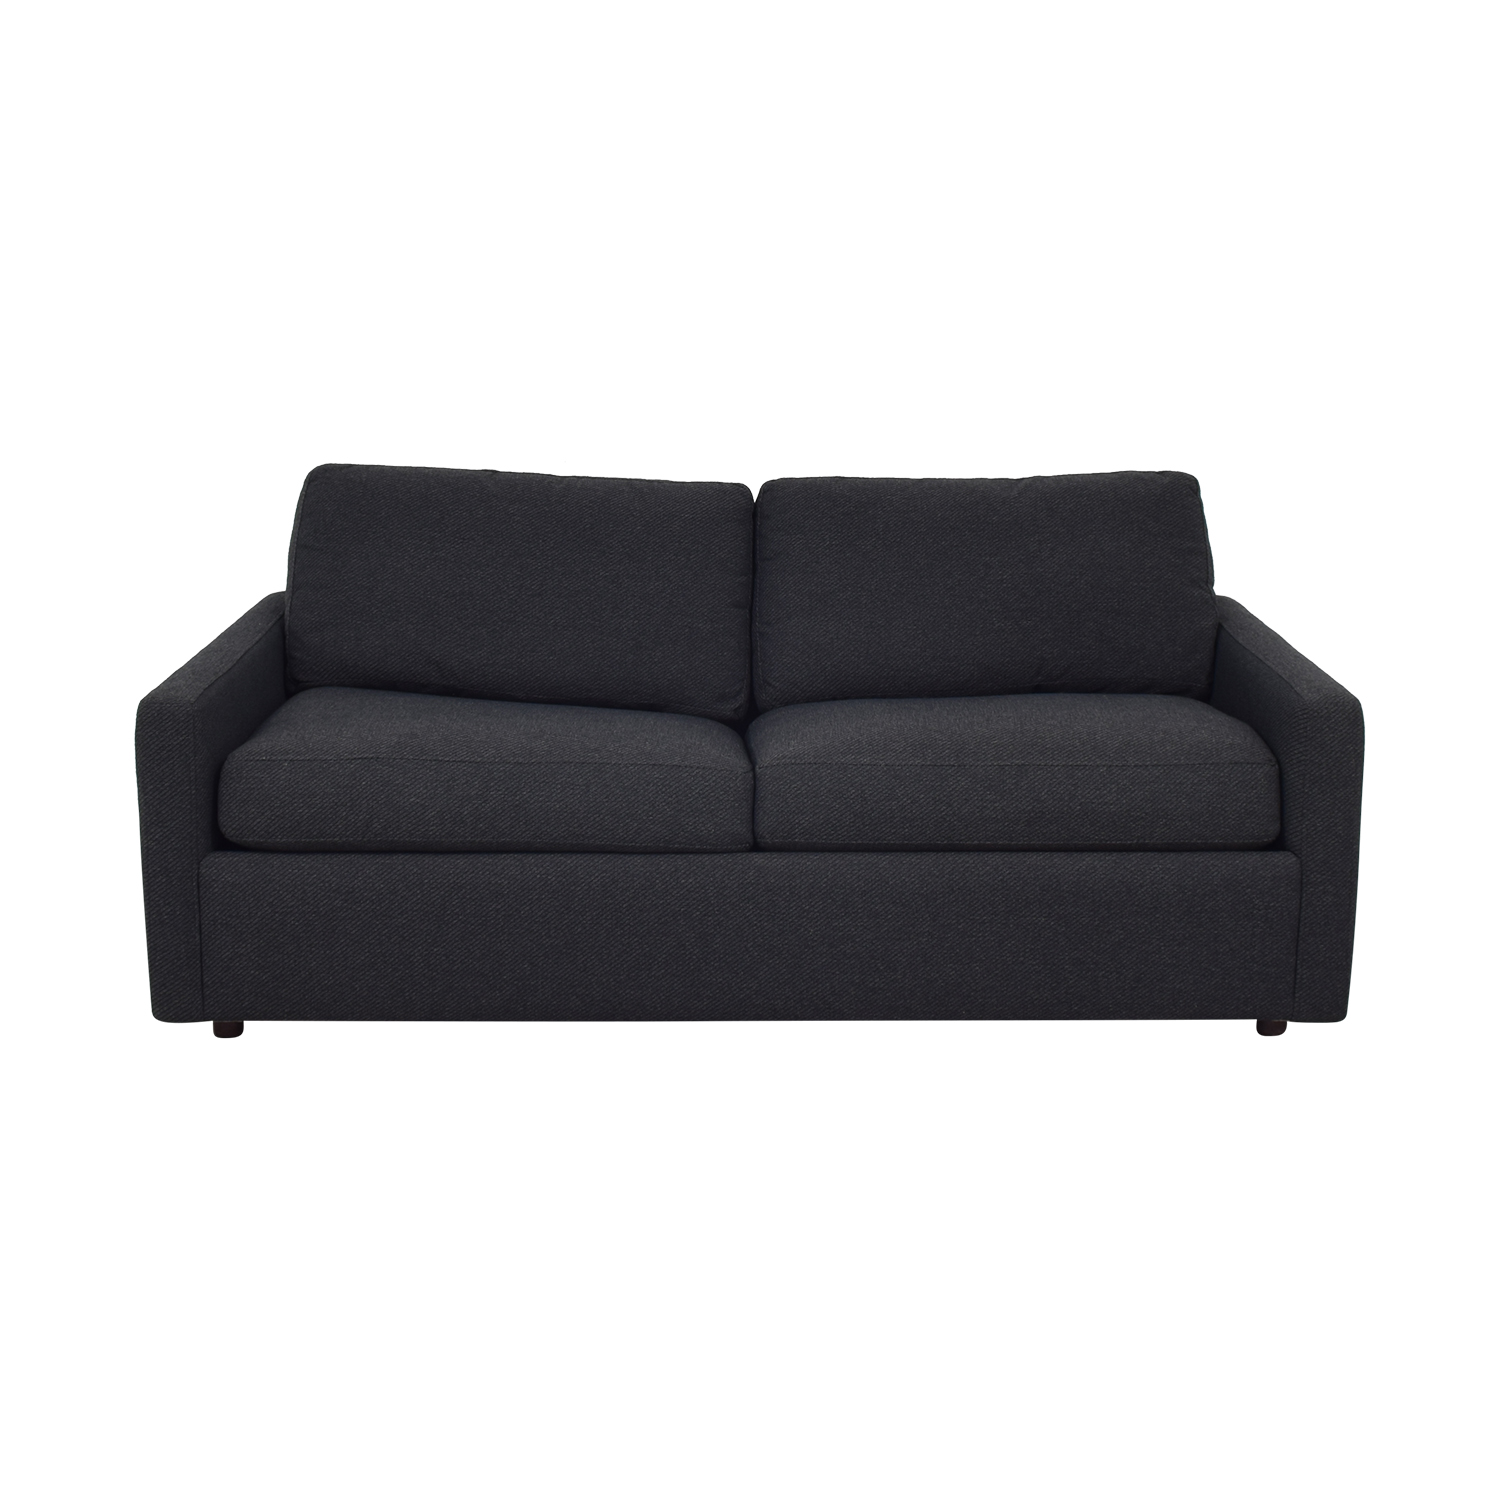 buy Room & Board Room & Board Easton Full Sleeper Sofa online